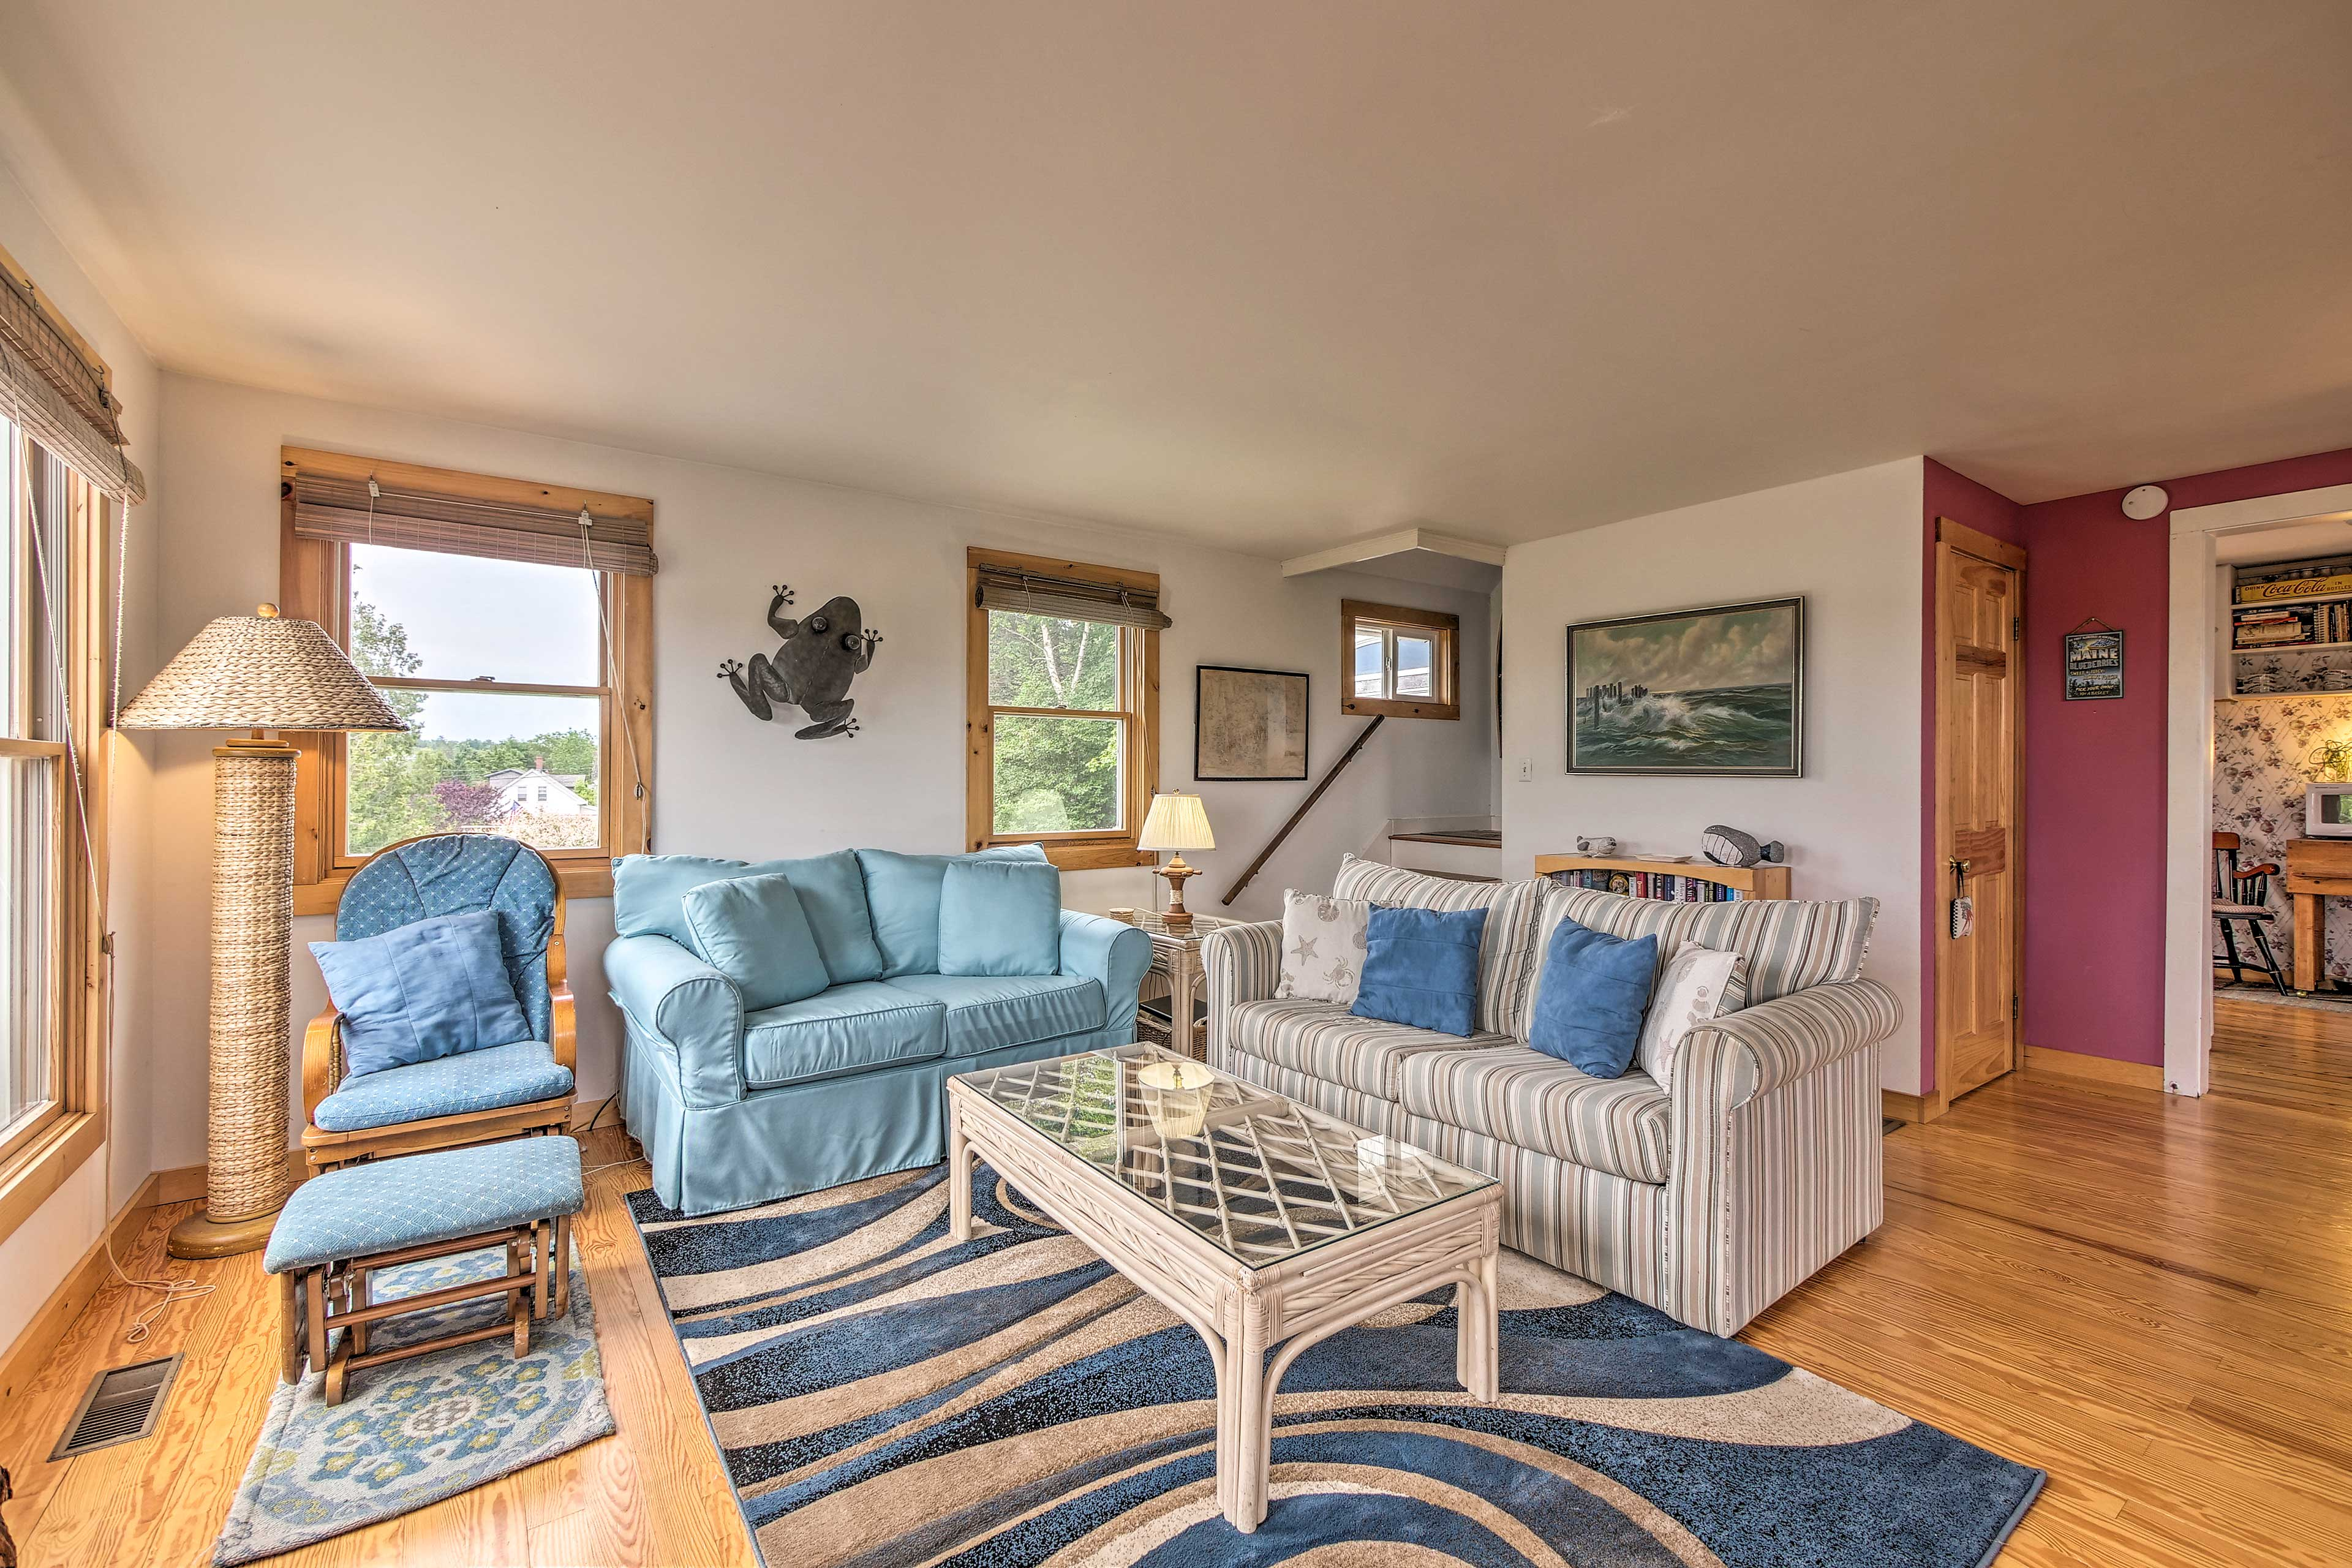 Unwind during your stay at this 3-bedroom, 2.5-bath Southwest Harbor home!